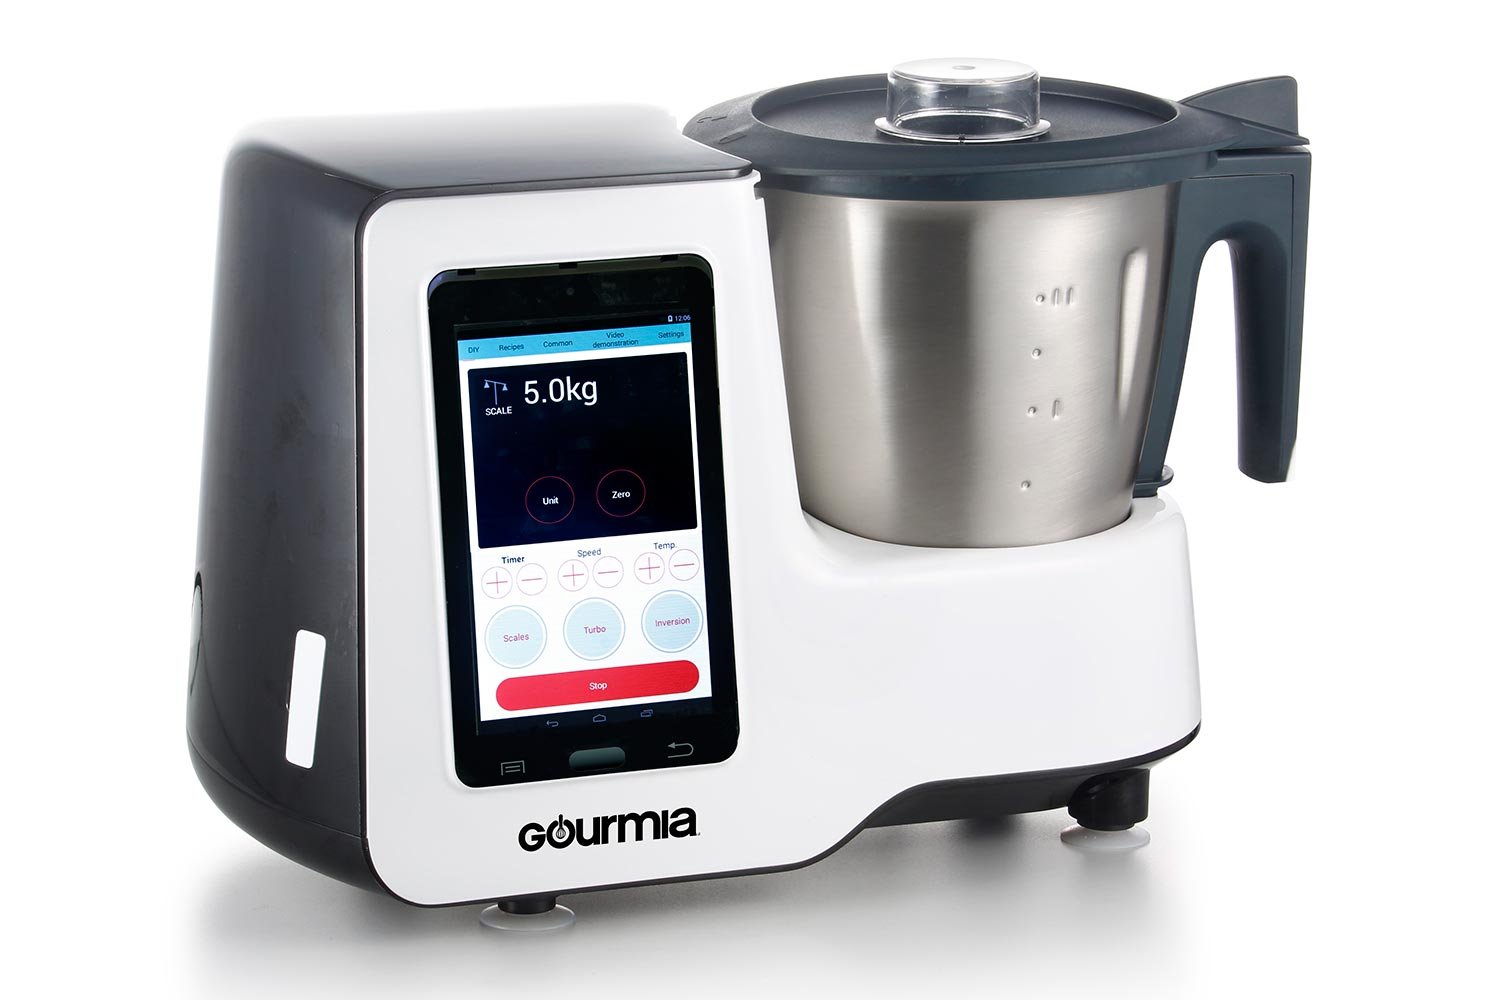 Smart Home Coffee Maker : Gourmia s coffee maker will make any kind of single-cup capsule you throw at it